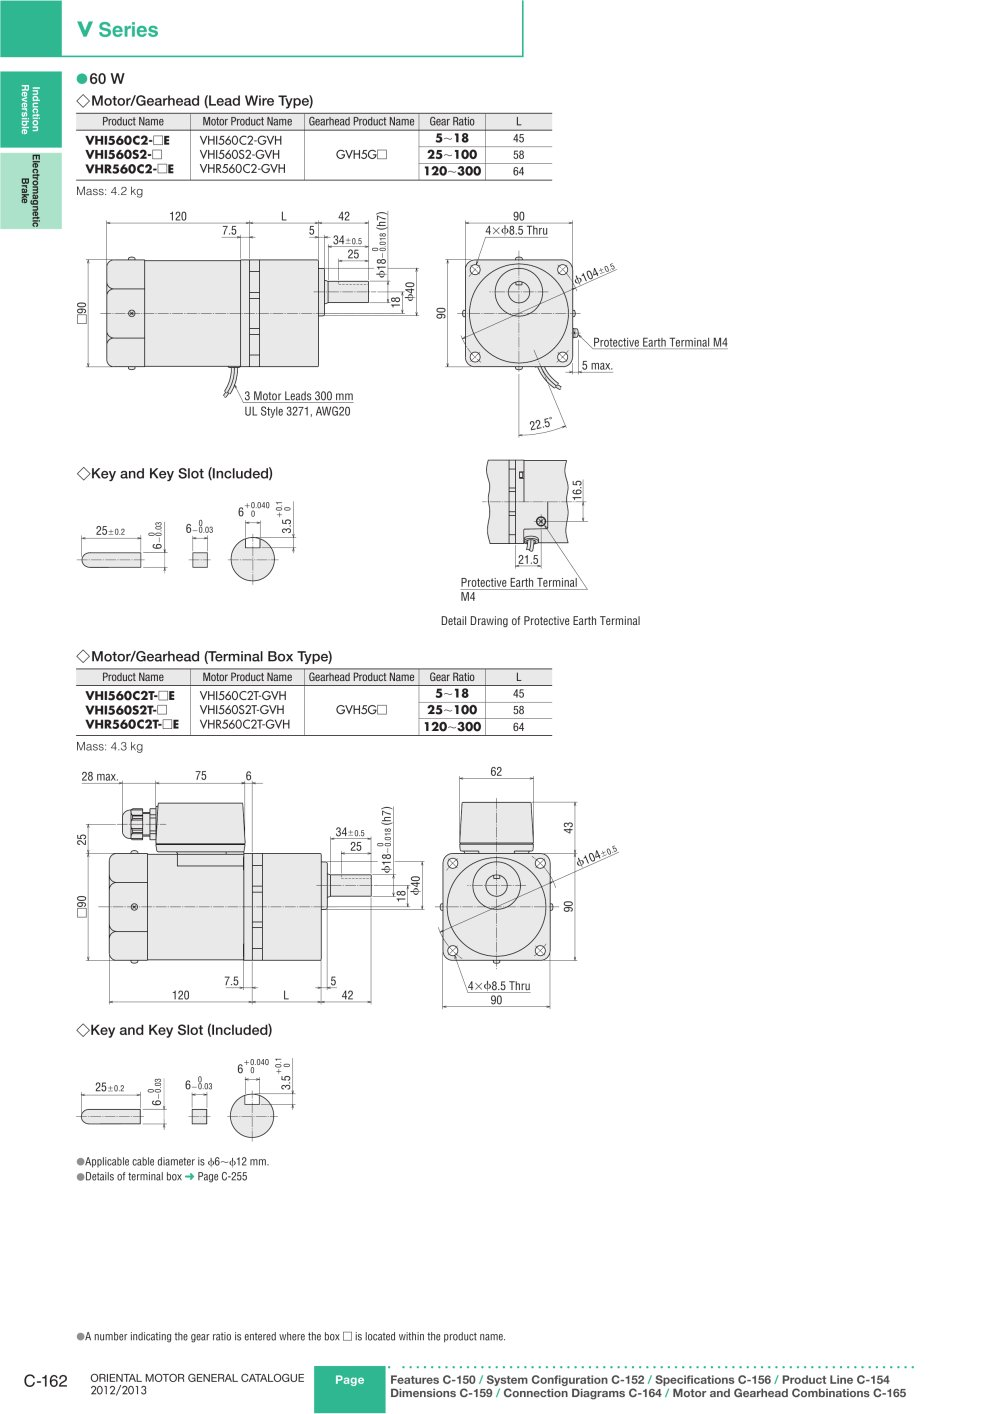 ge electric motor wiring diagram wirdig leeson motor wiring diagram moreover ge electric motor wiring diagram